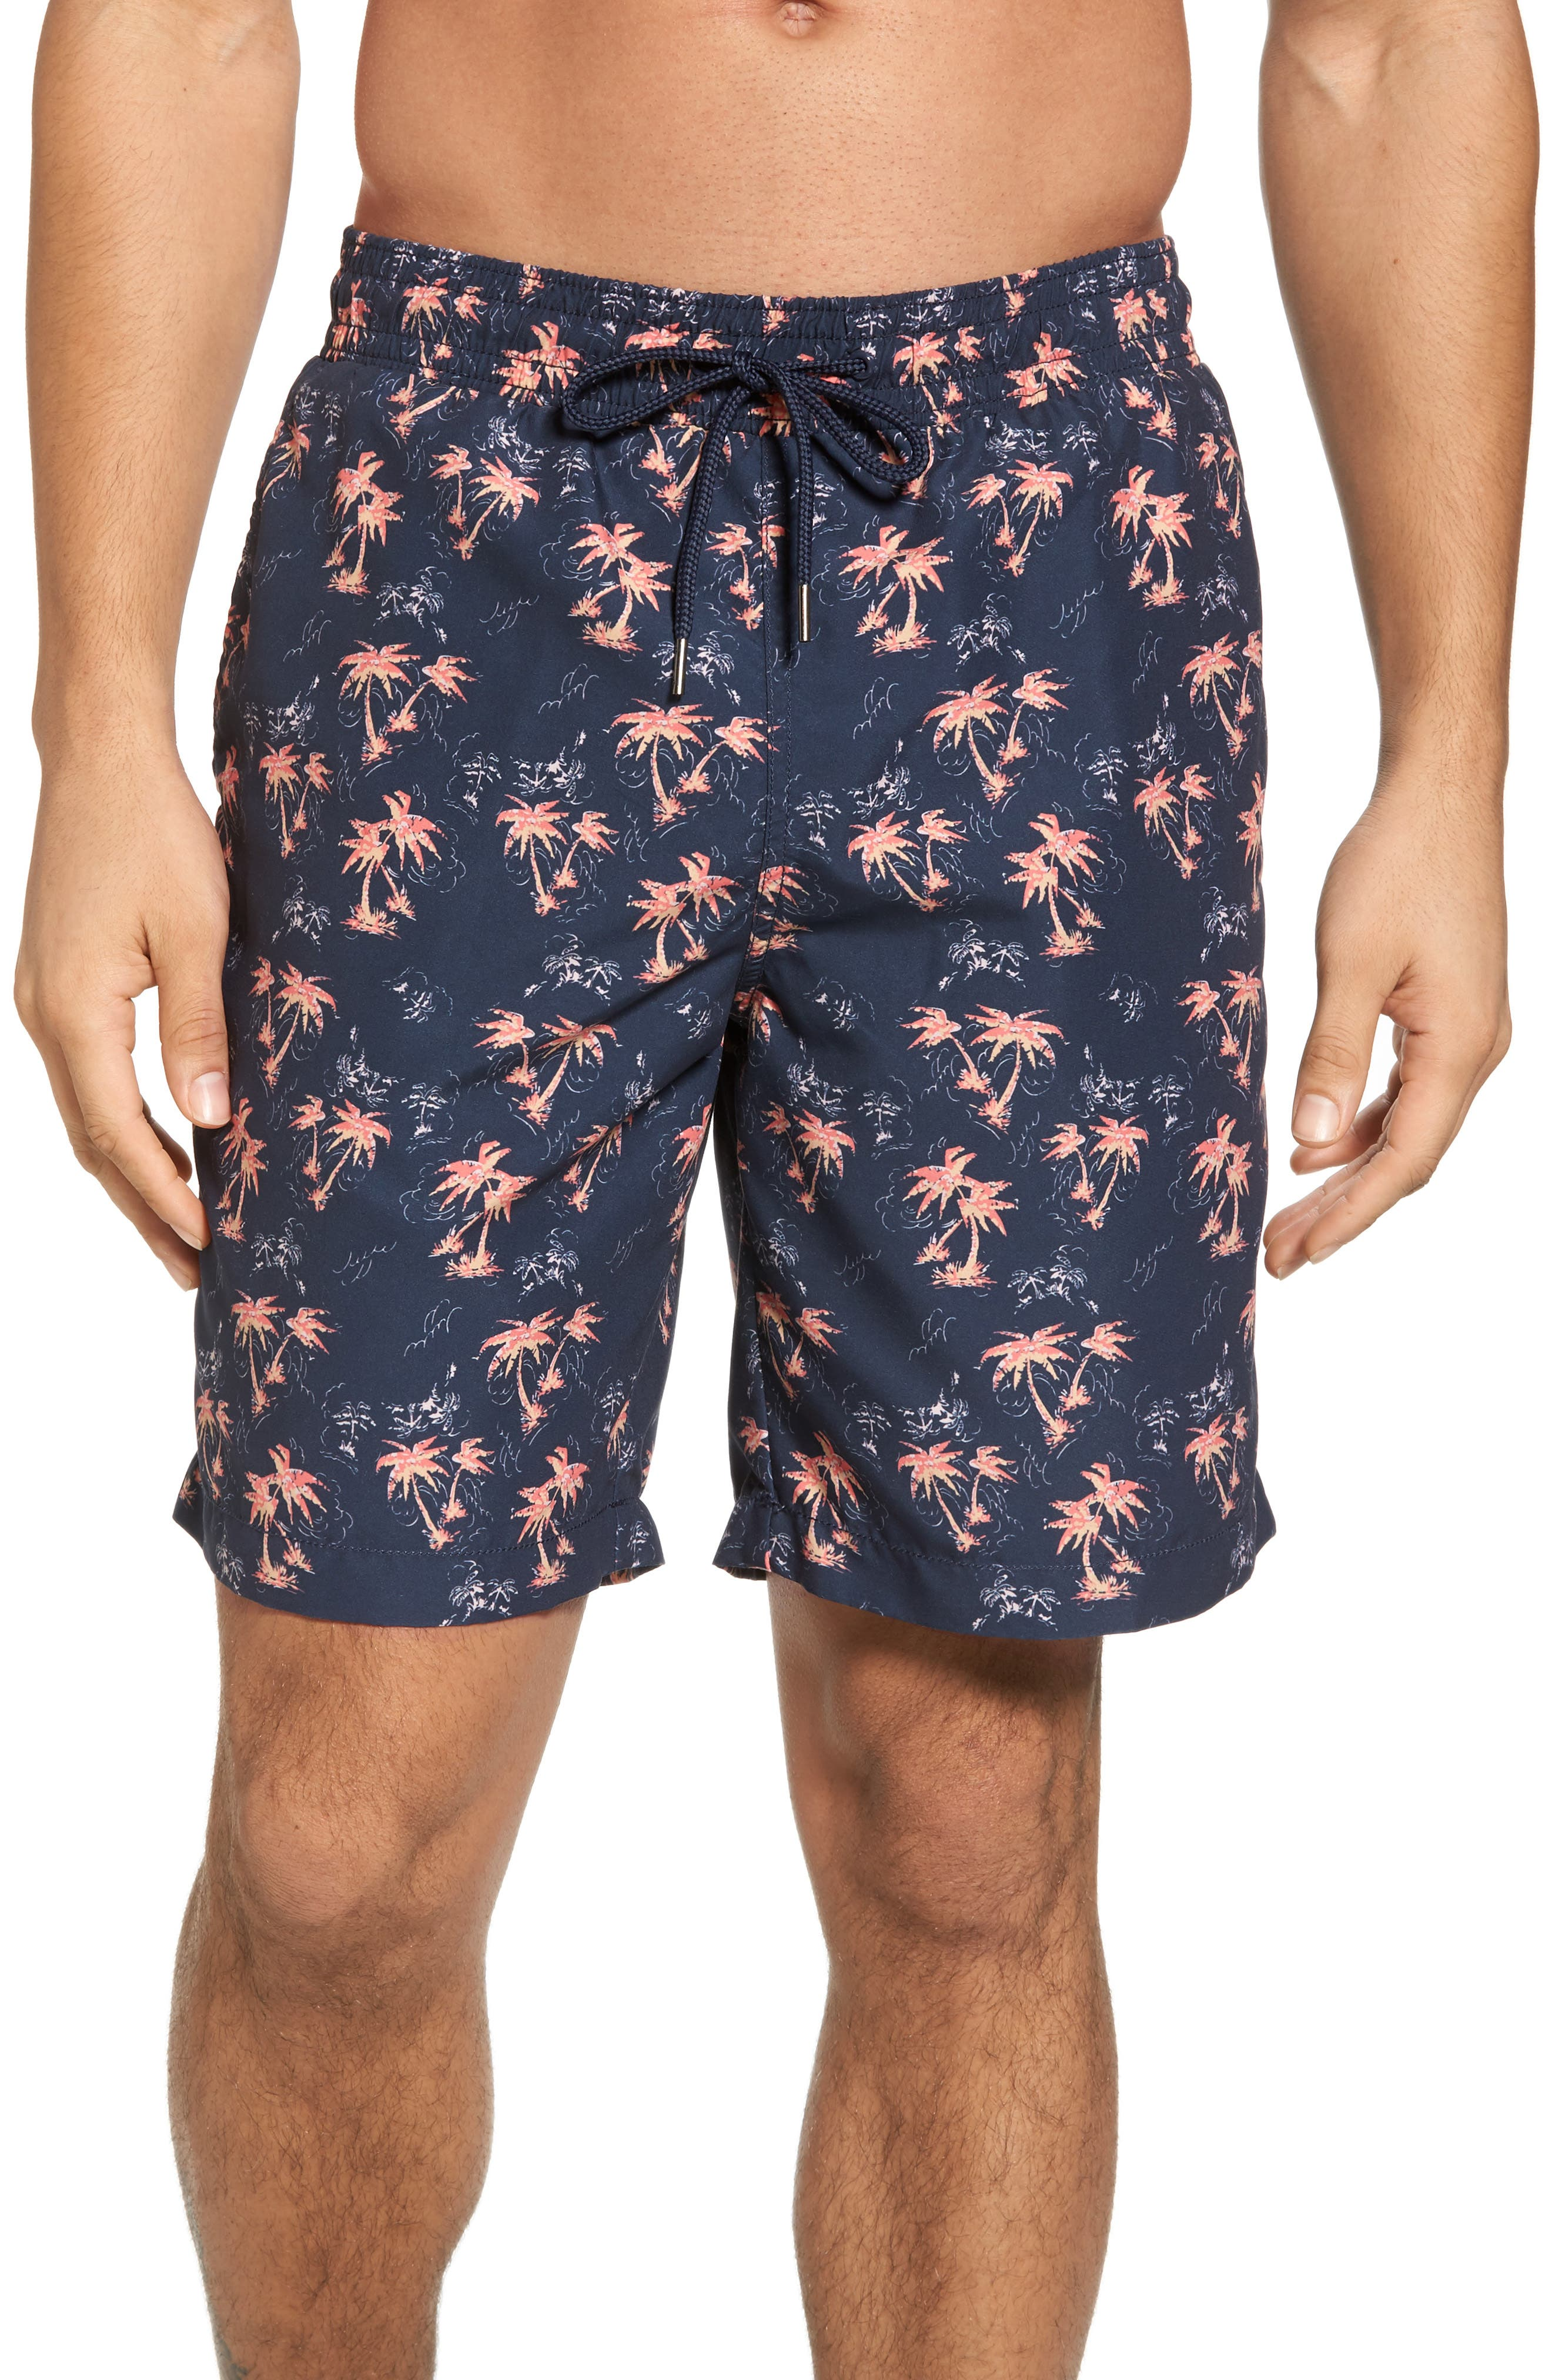 Burning Palm Swim Trunks,                         Main,                         color, Carbon Spice Coral